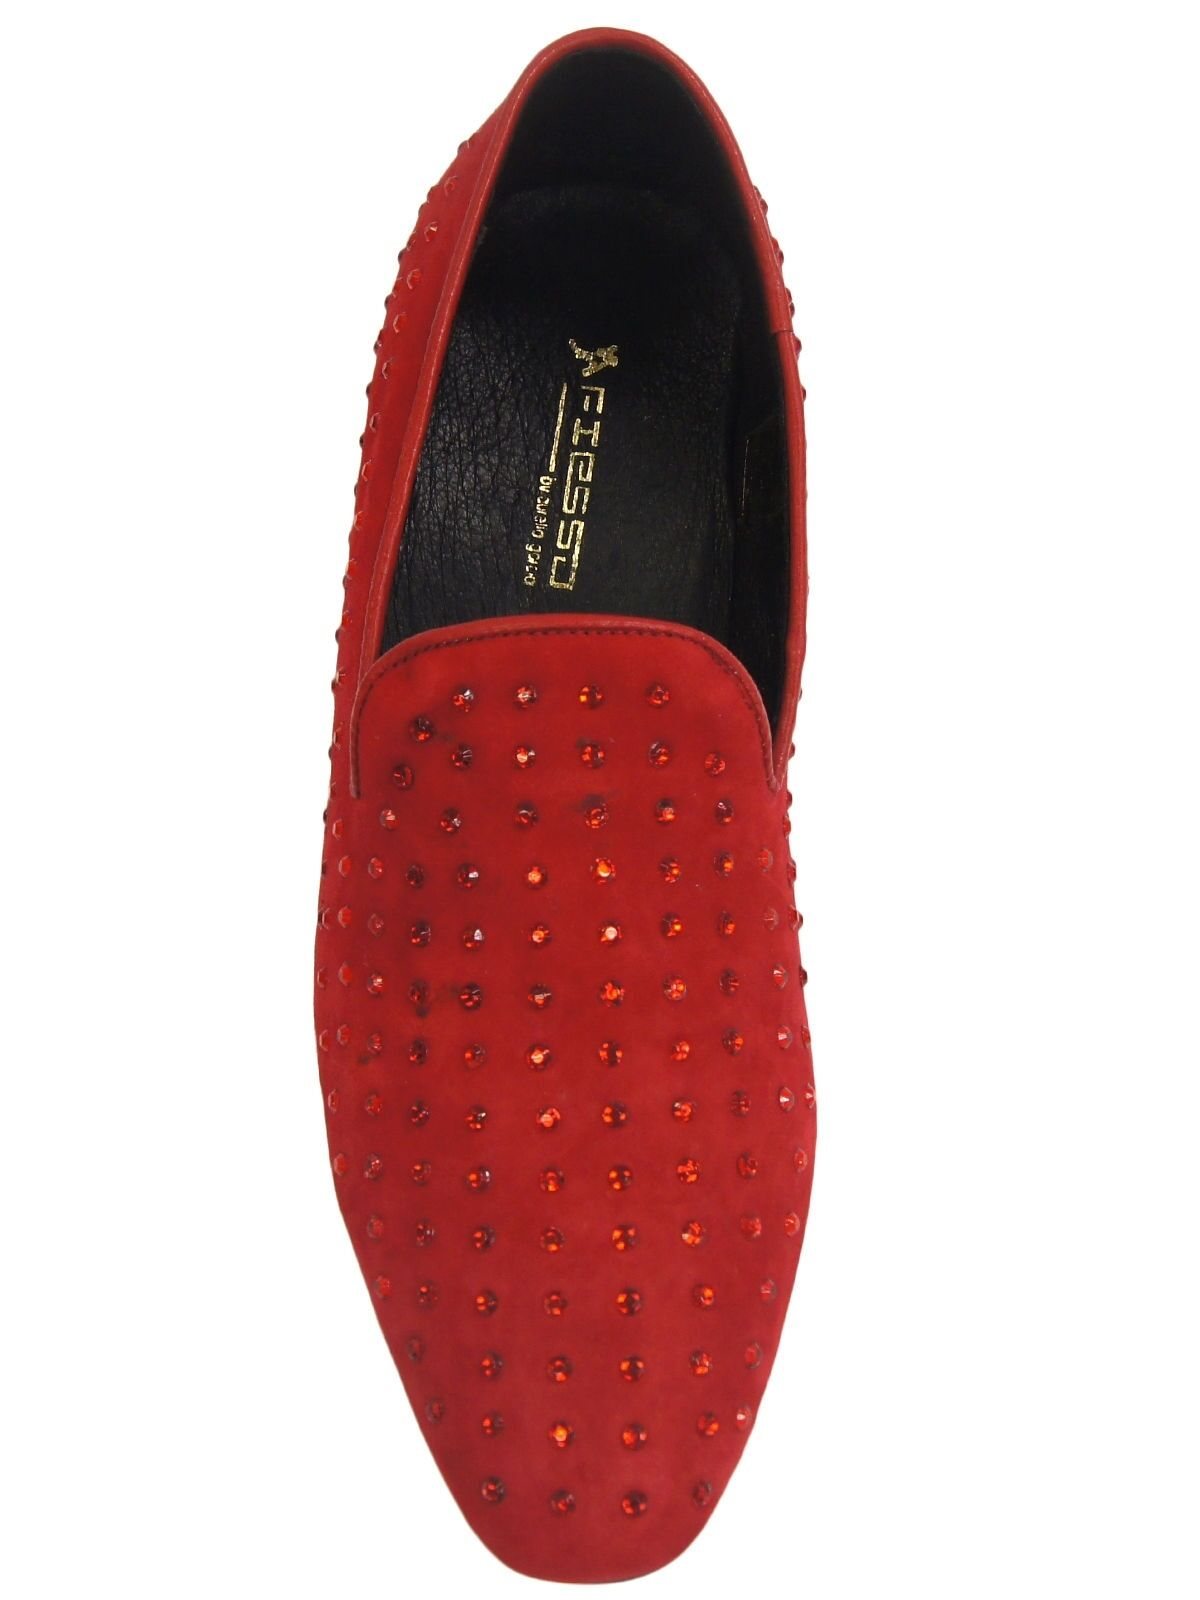 Fiesso Men Men Men Red Suede Rhinestone Dress Casual Slipper Loafer Party Trending shoes cb4936